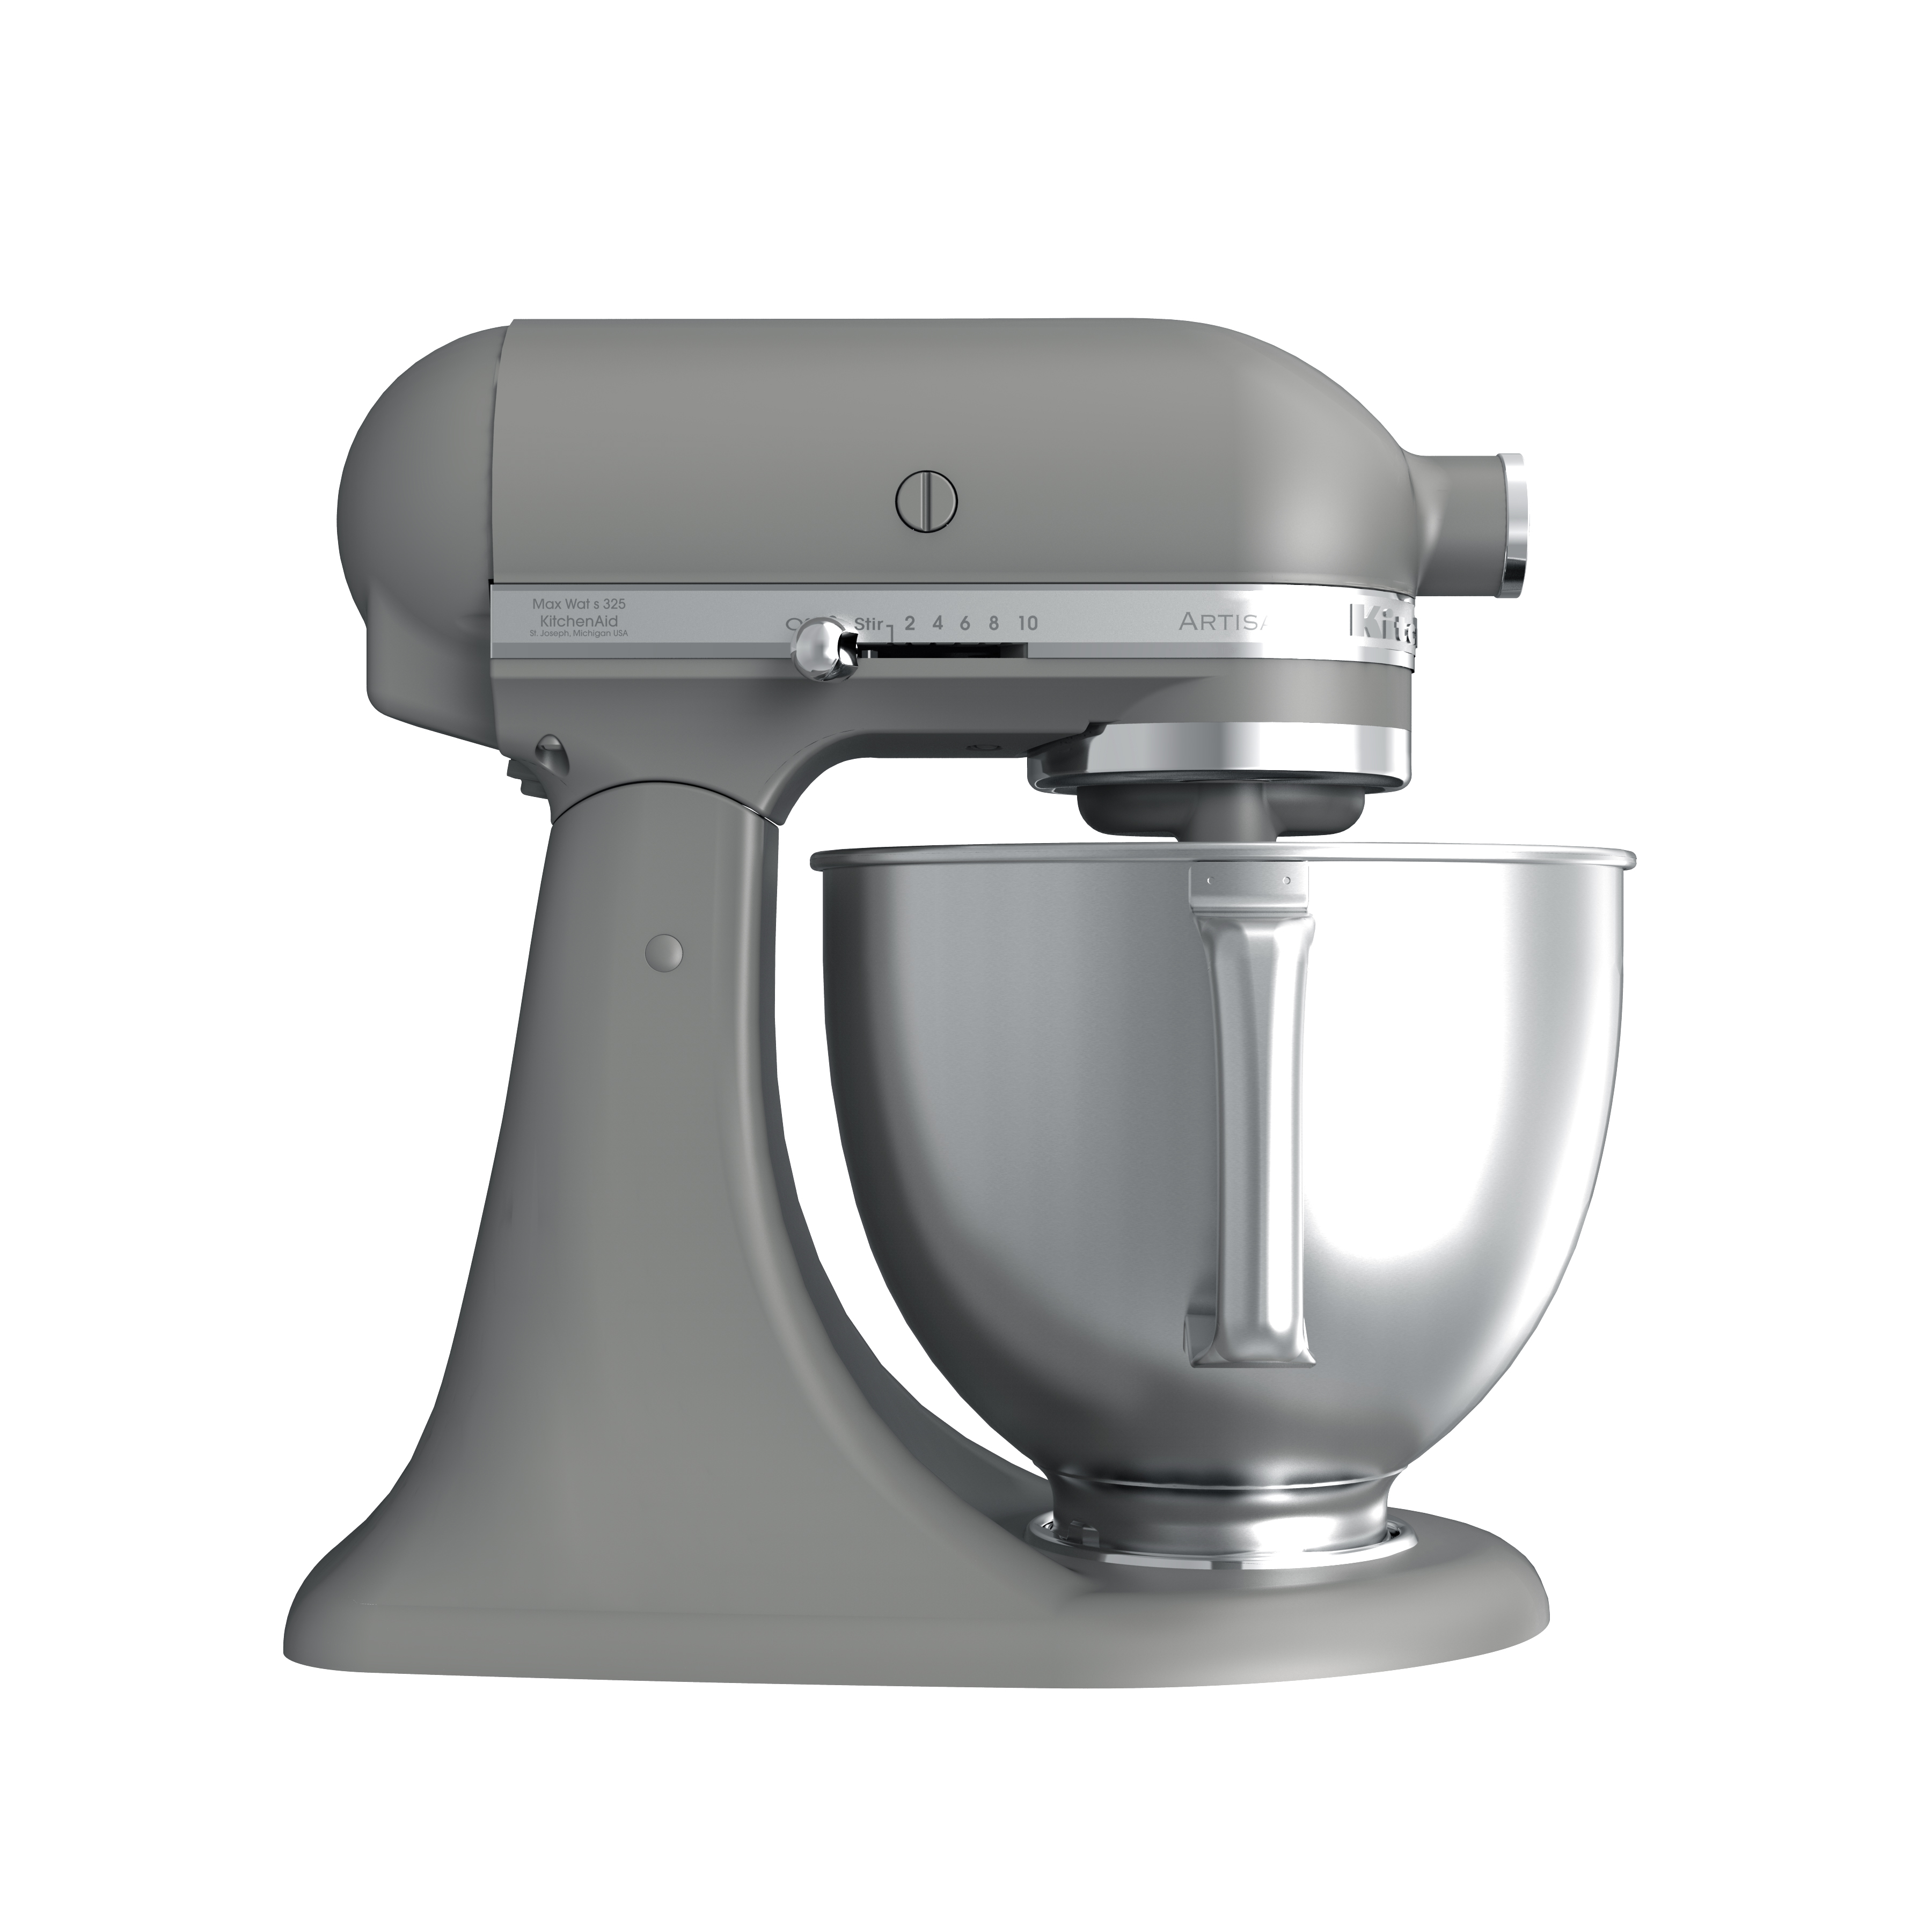 Kitchenaid Colors new colors | get the scoop and dish it out